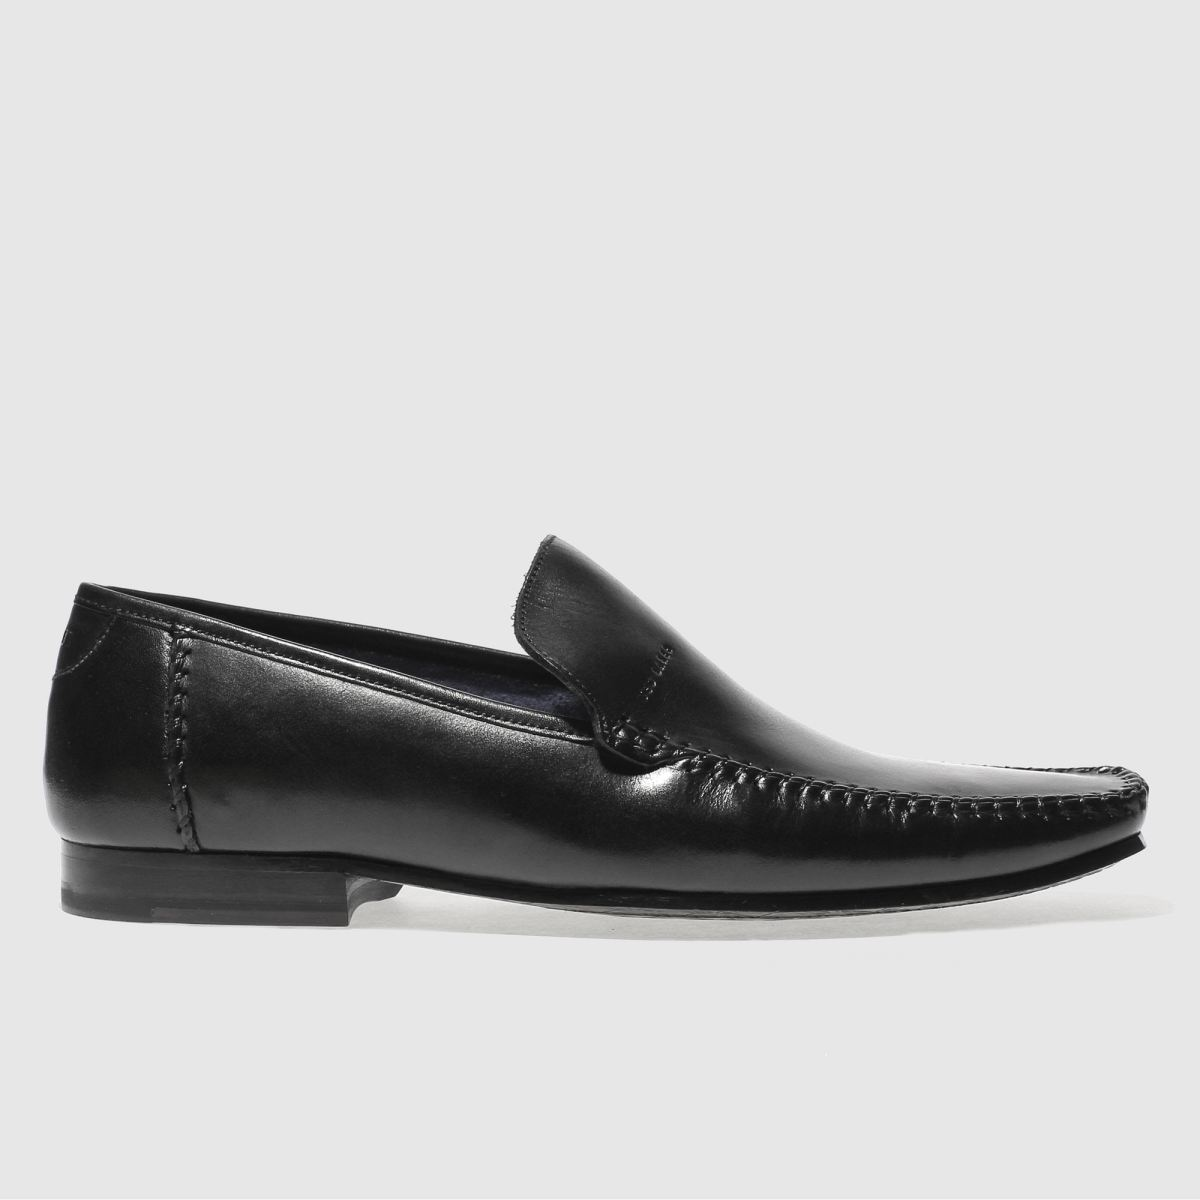 Ted Baker Black Bly 9 Shoes